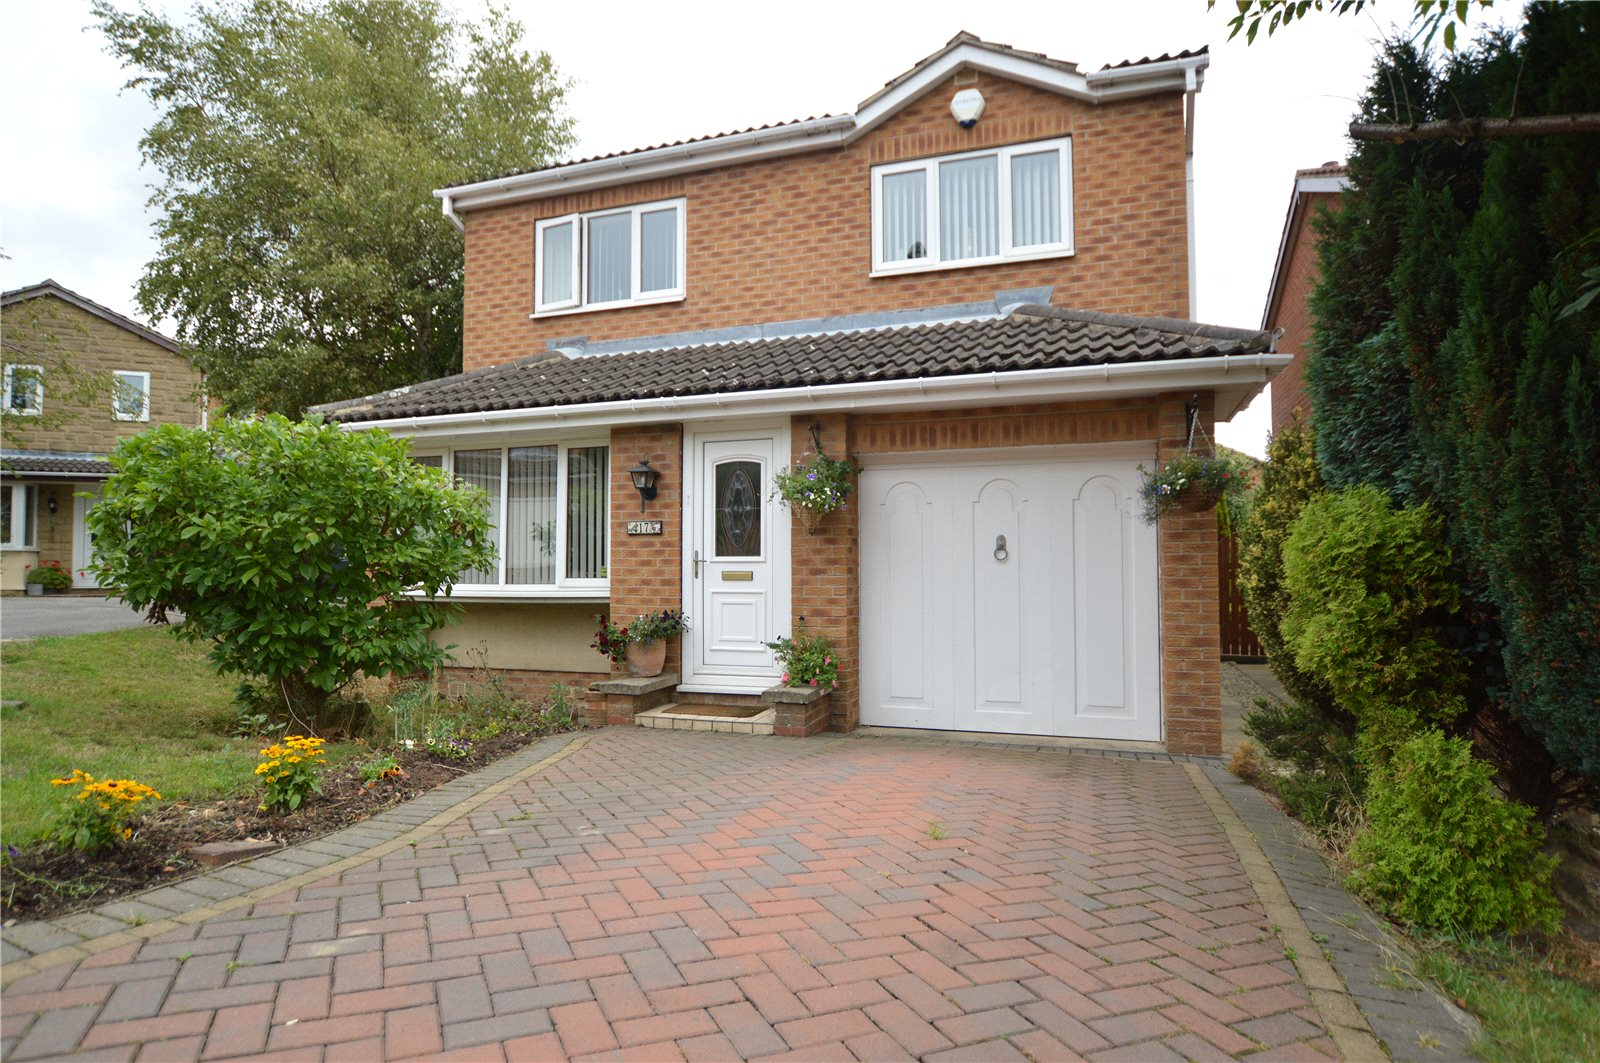 property for sale in Morley, exterior of detached home